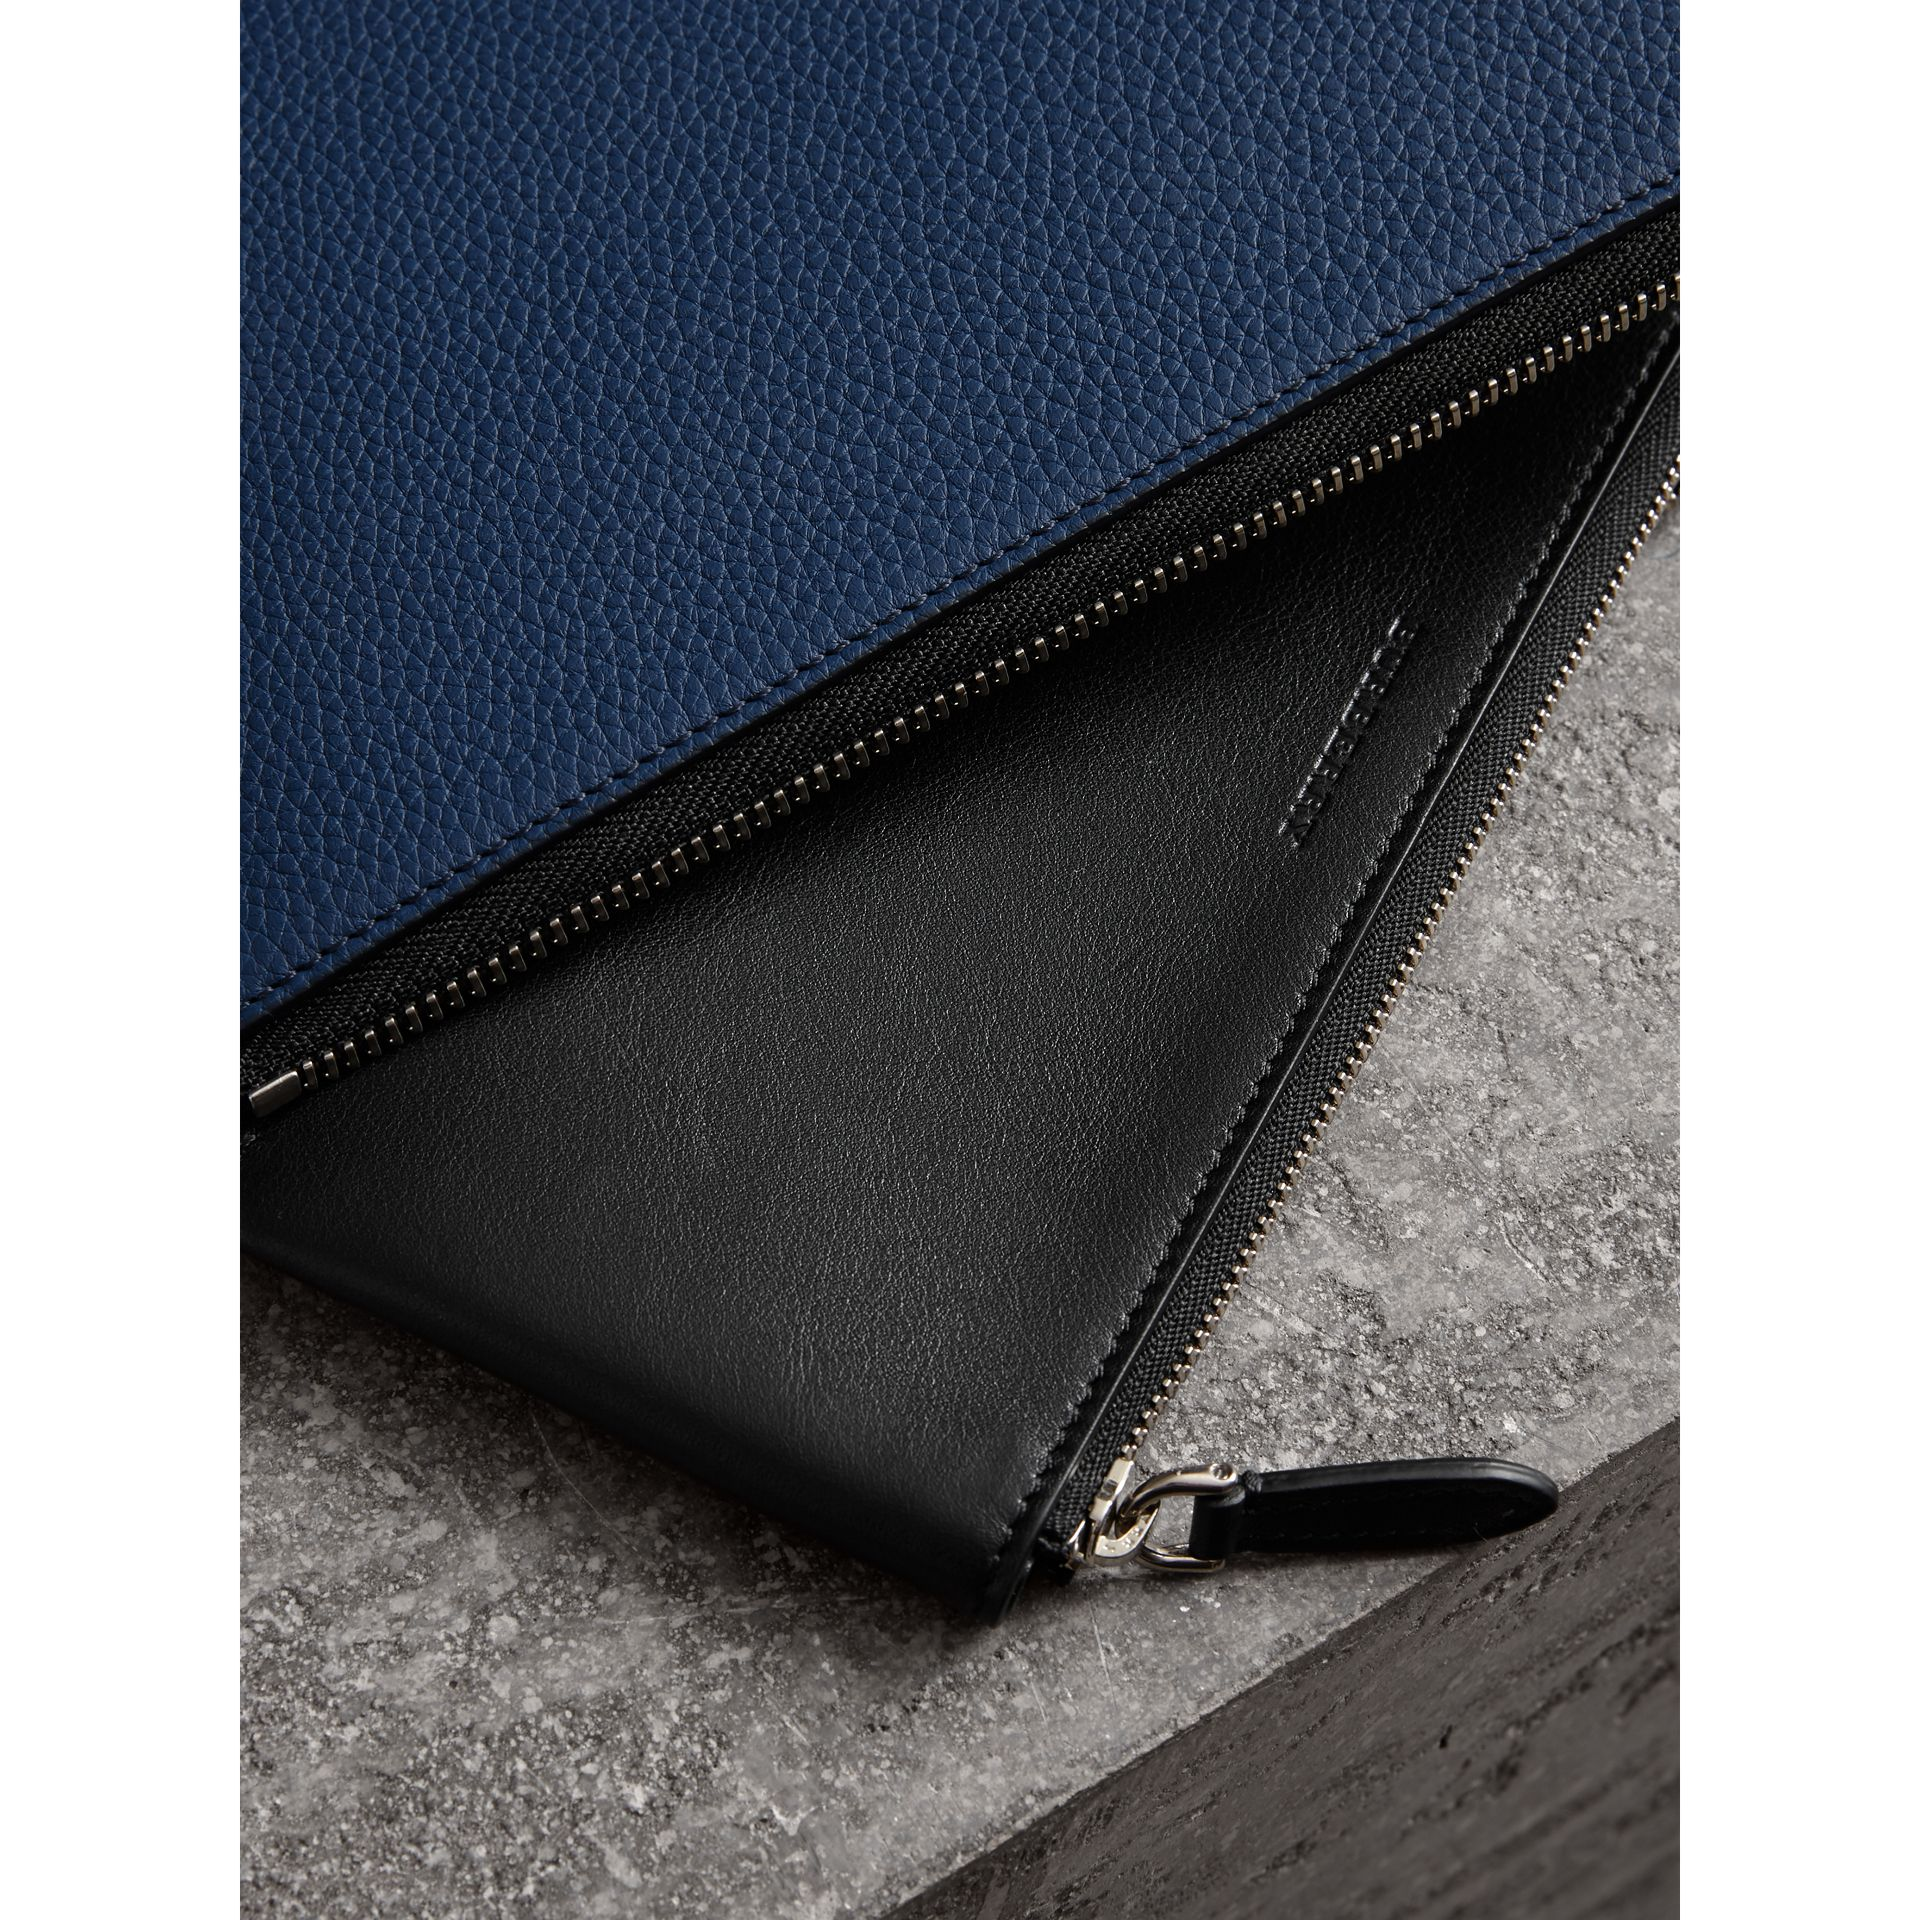 Two-tone Grainy Leather Travel Wallet in Bright Ultramarine - Men | Burberry Hong Kong - gallery image 4